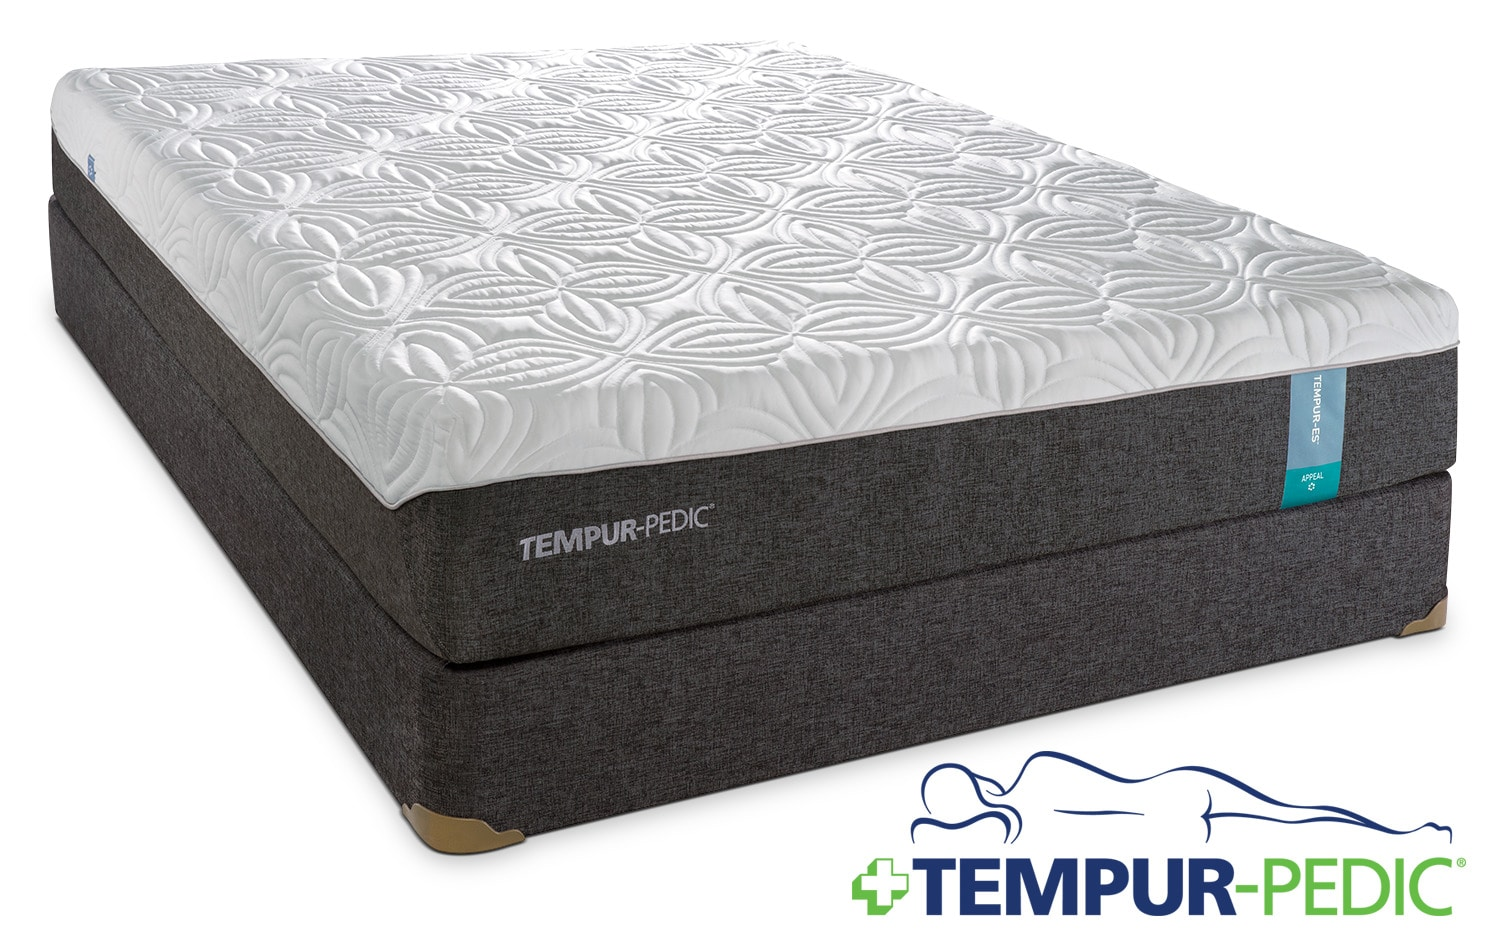 Tempur-Pedic Appeal 2.0 Cushion Firm Queen Mattress and Boxspring Set